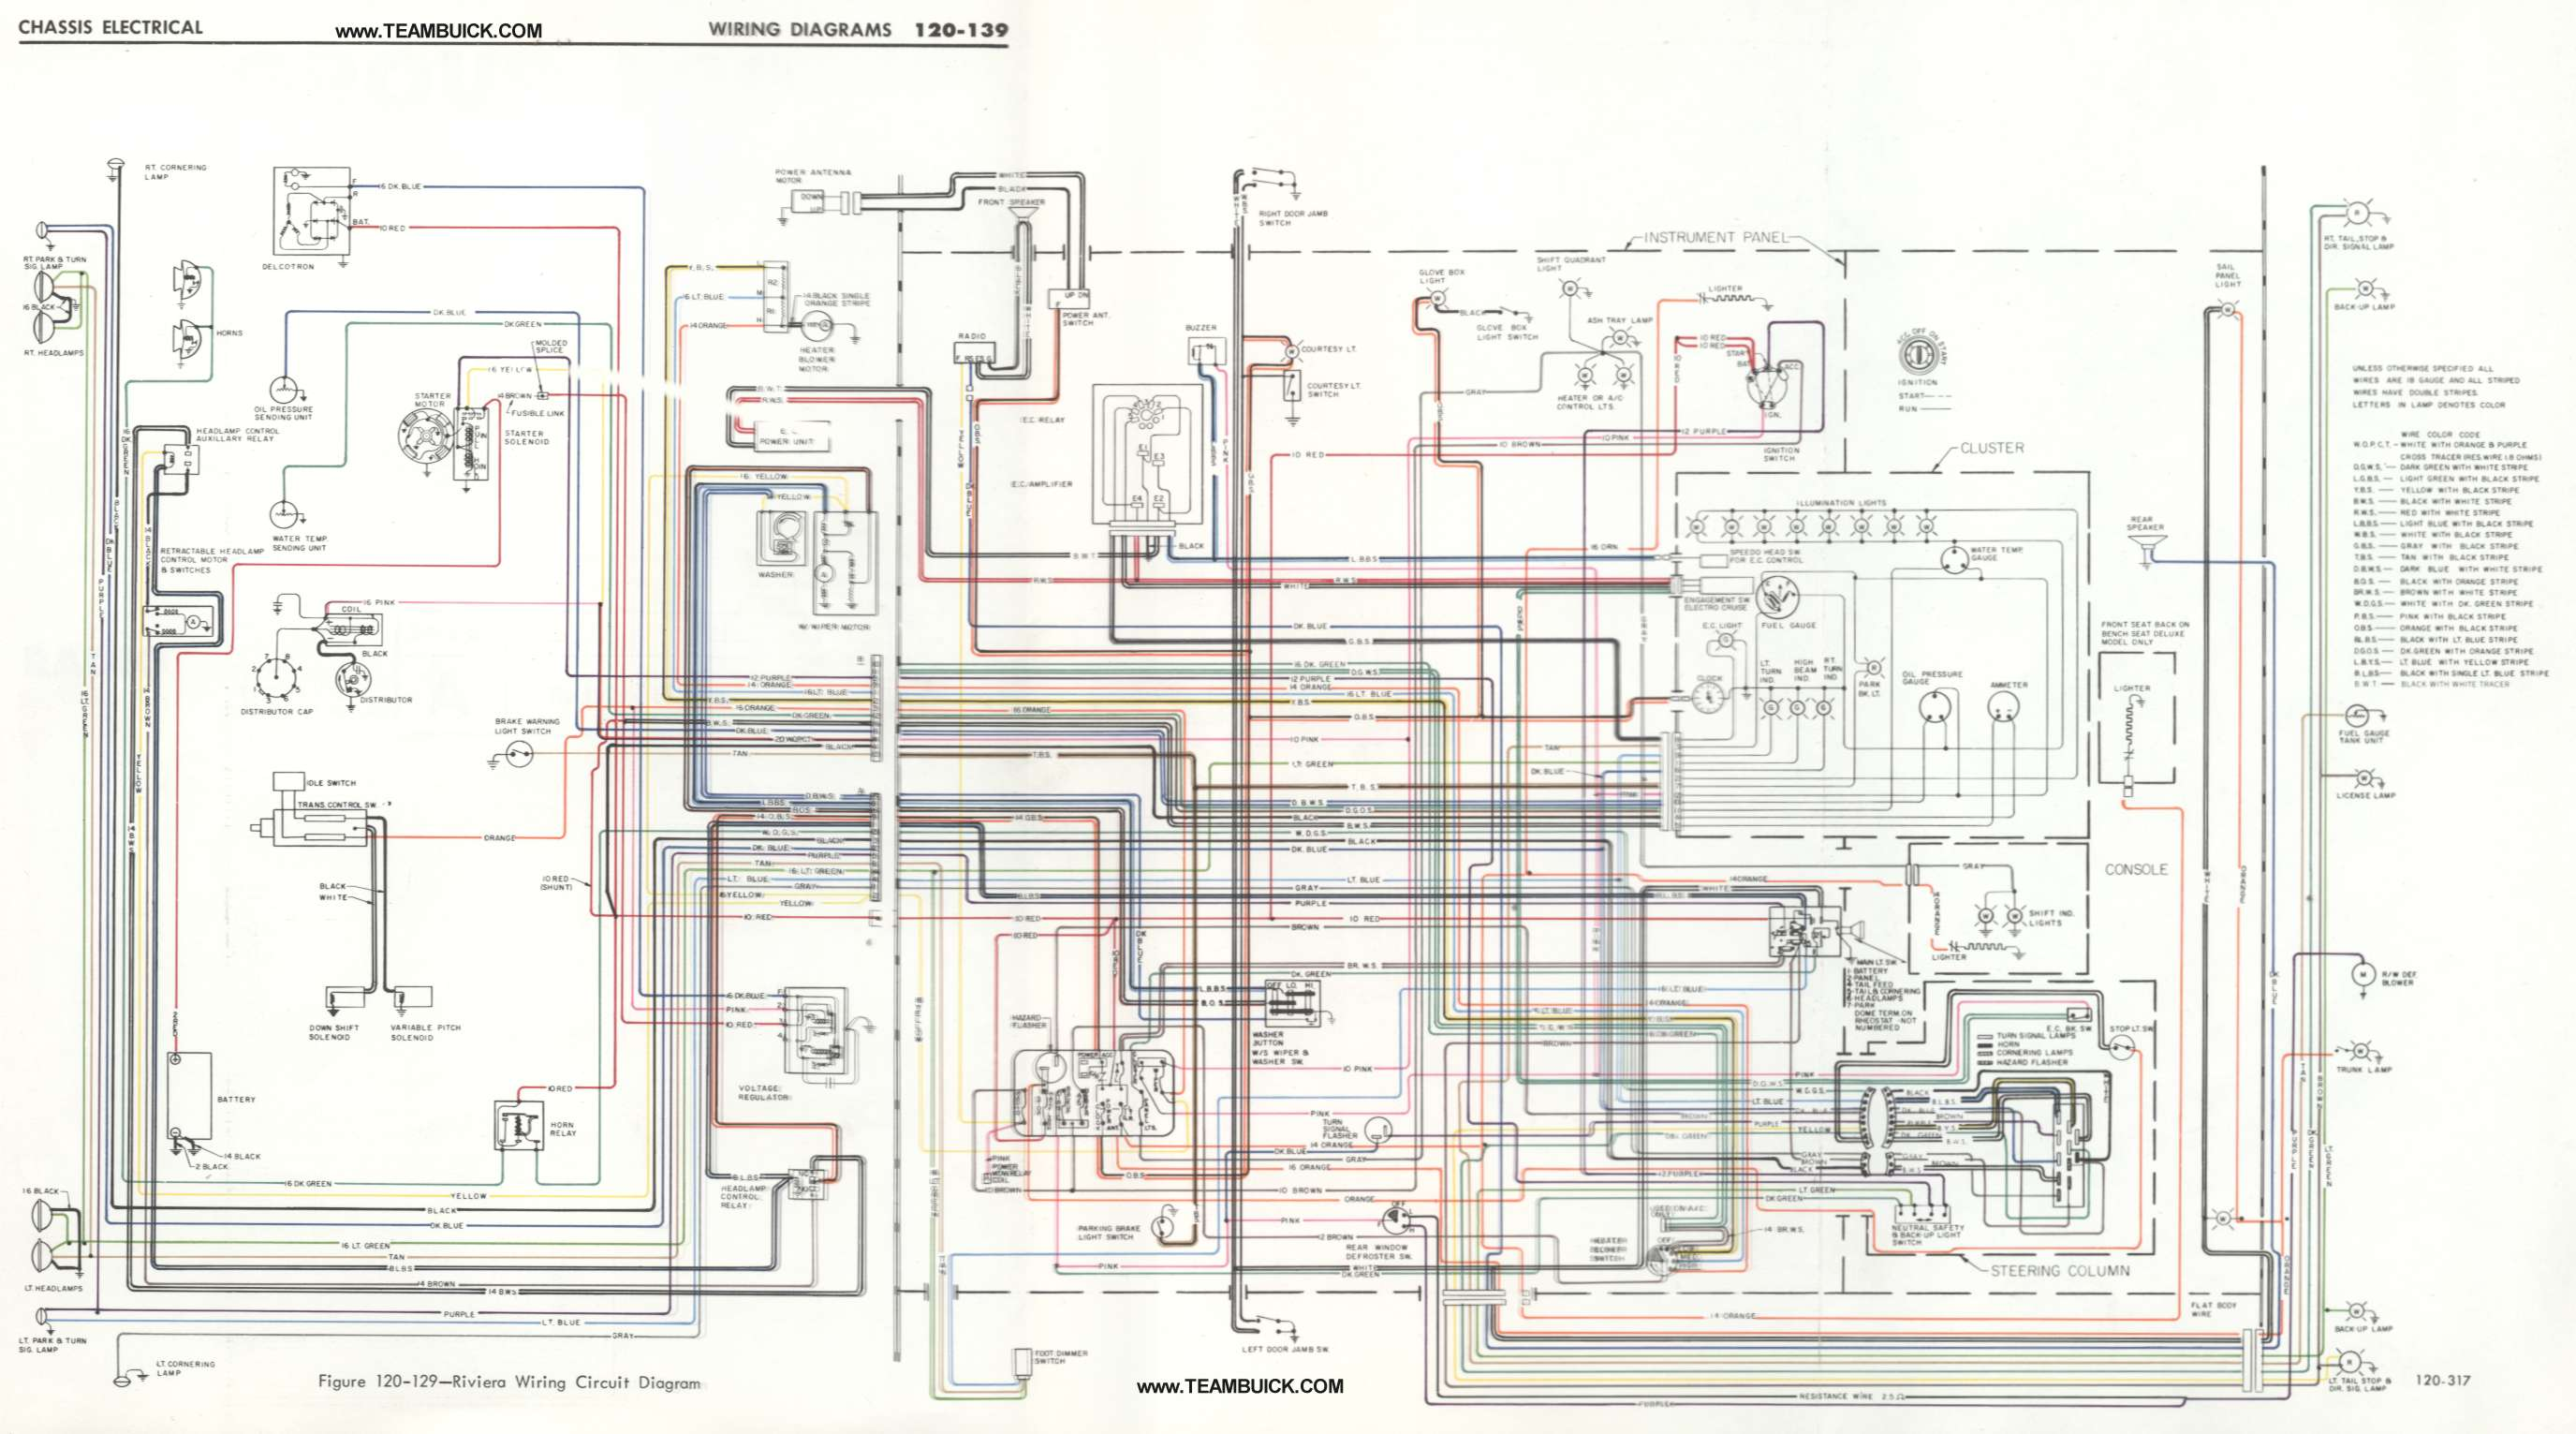 diagram] 1985 buick riviera wiring diagram full version hd quality wiring  diagram - meiosisdiagram.ipabromacapitale.it  wiring and fuse image - ipabromacapitale.it